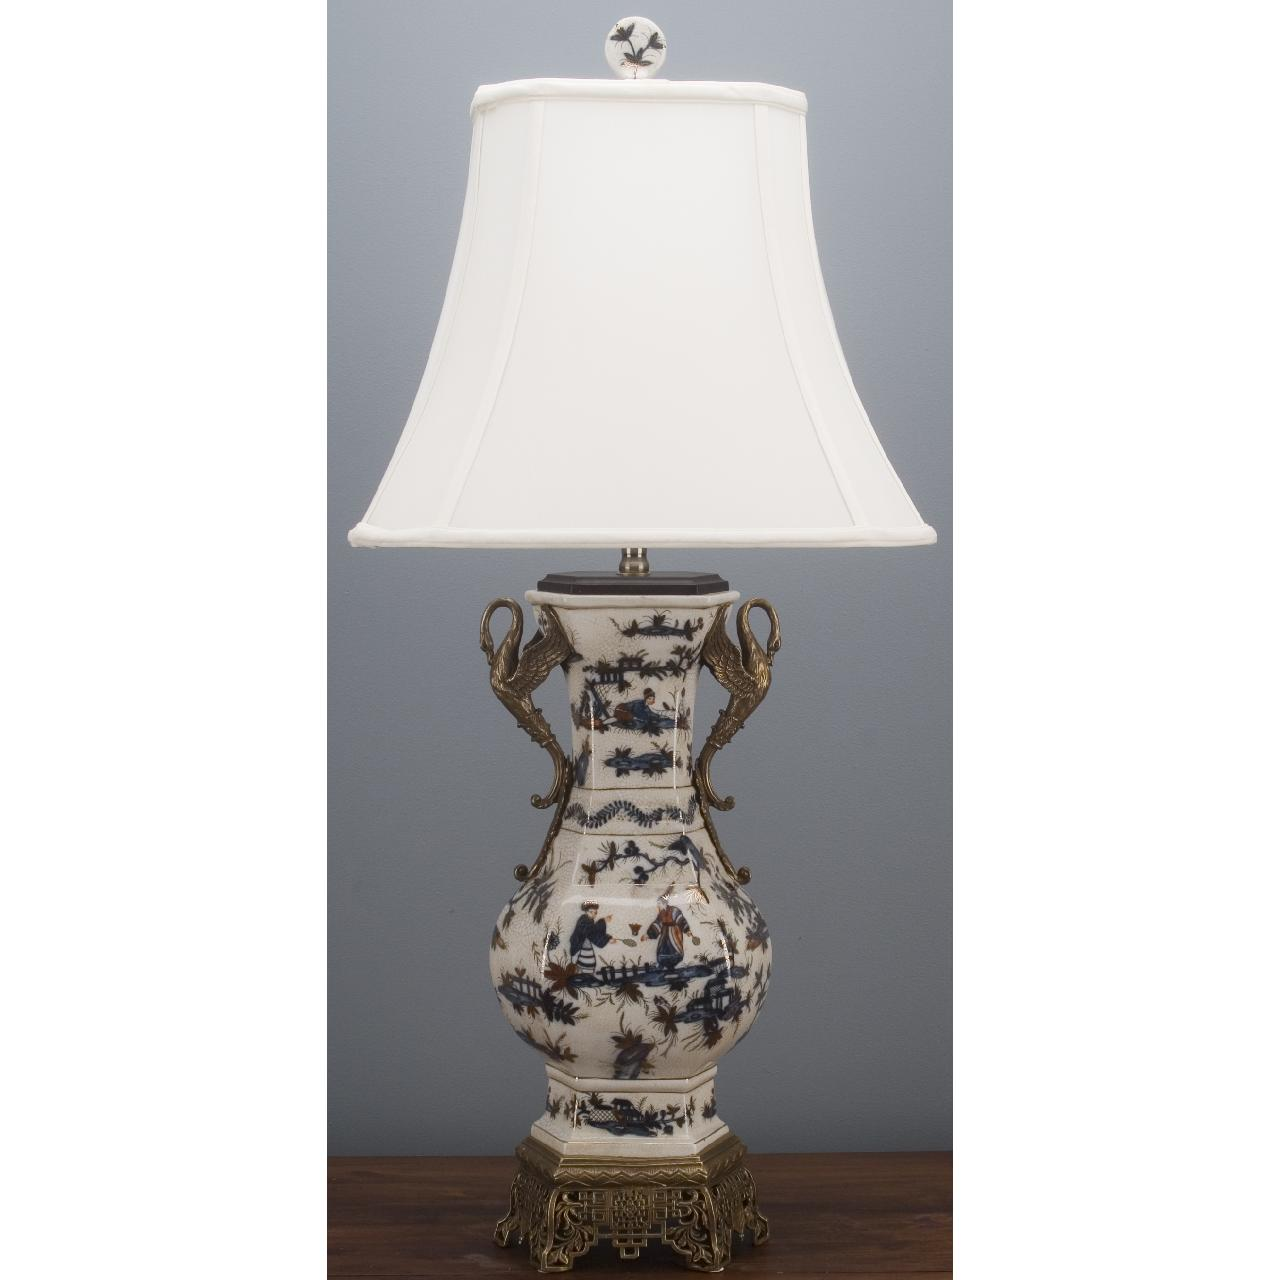 oriental porcelain blue and white swan vase lamp with bronze ormolu accent table lamps oak side shelf marble high top resin wicker small wooden drawers pottery barn plans black